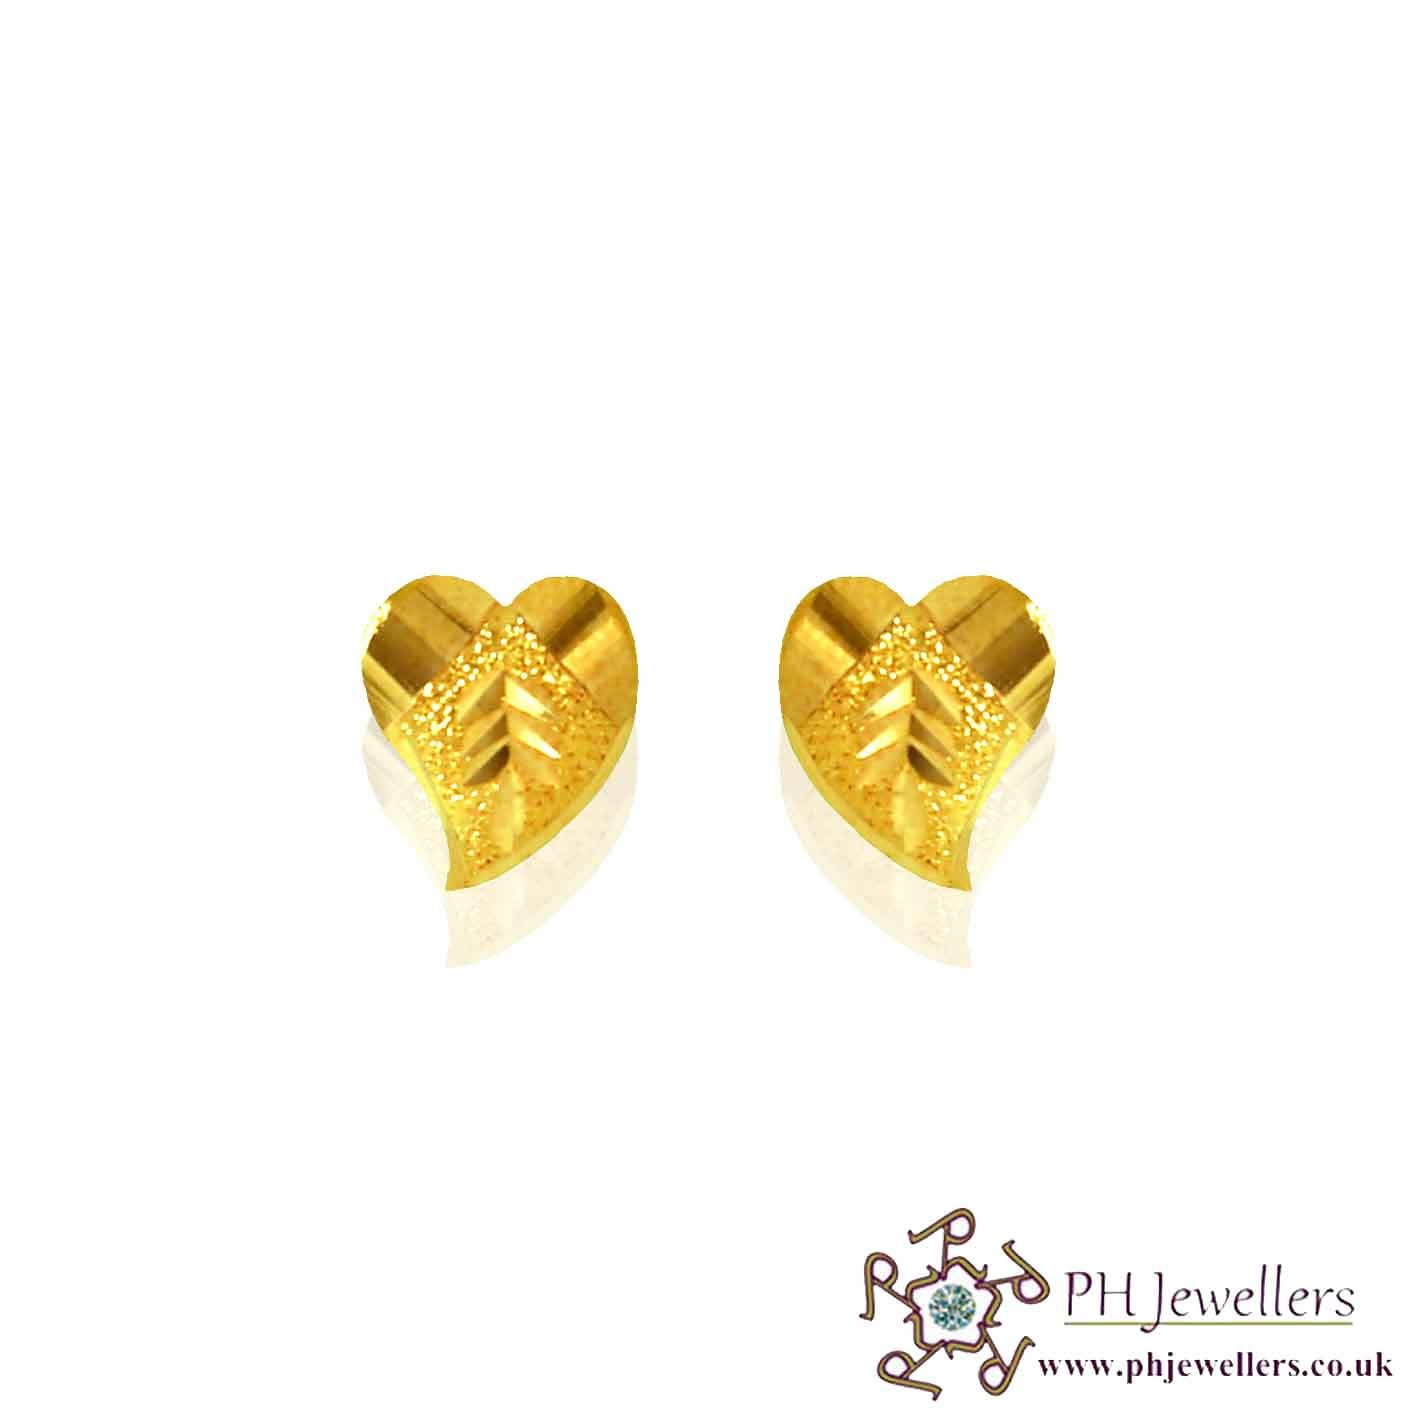 22ct 916 Yellow Gold Heart Earring SE22